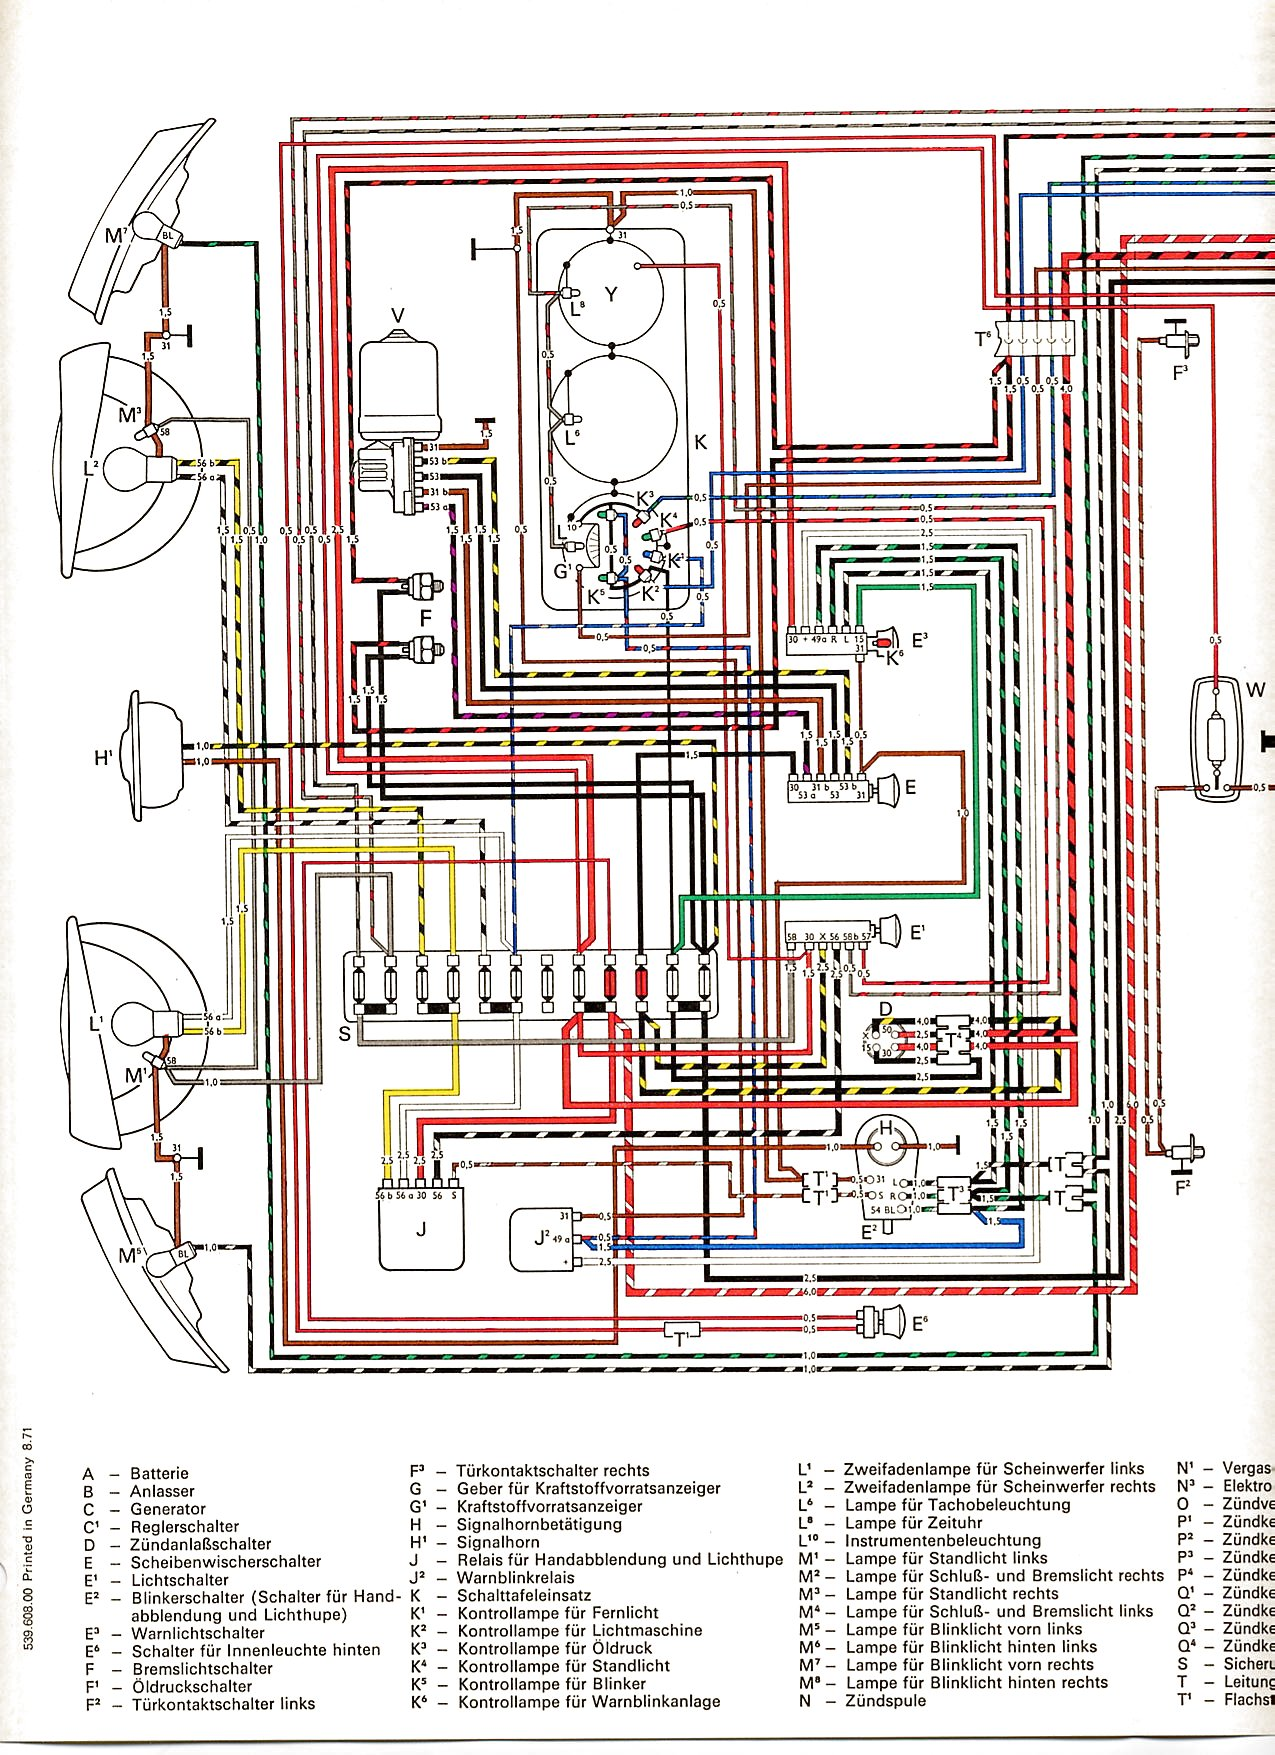 Wiring Diagram Vw Transporter - Basic Wiring Diagram •